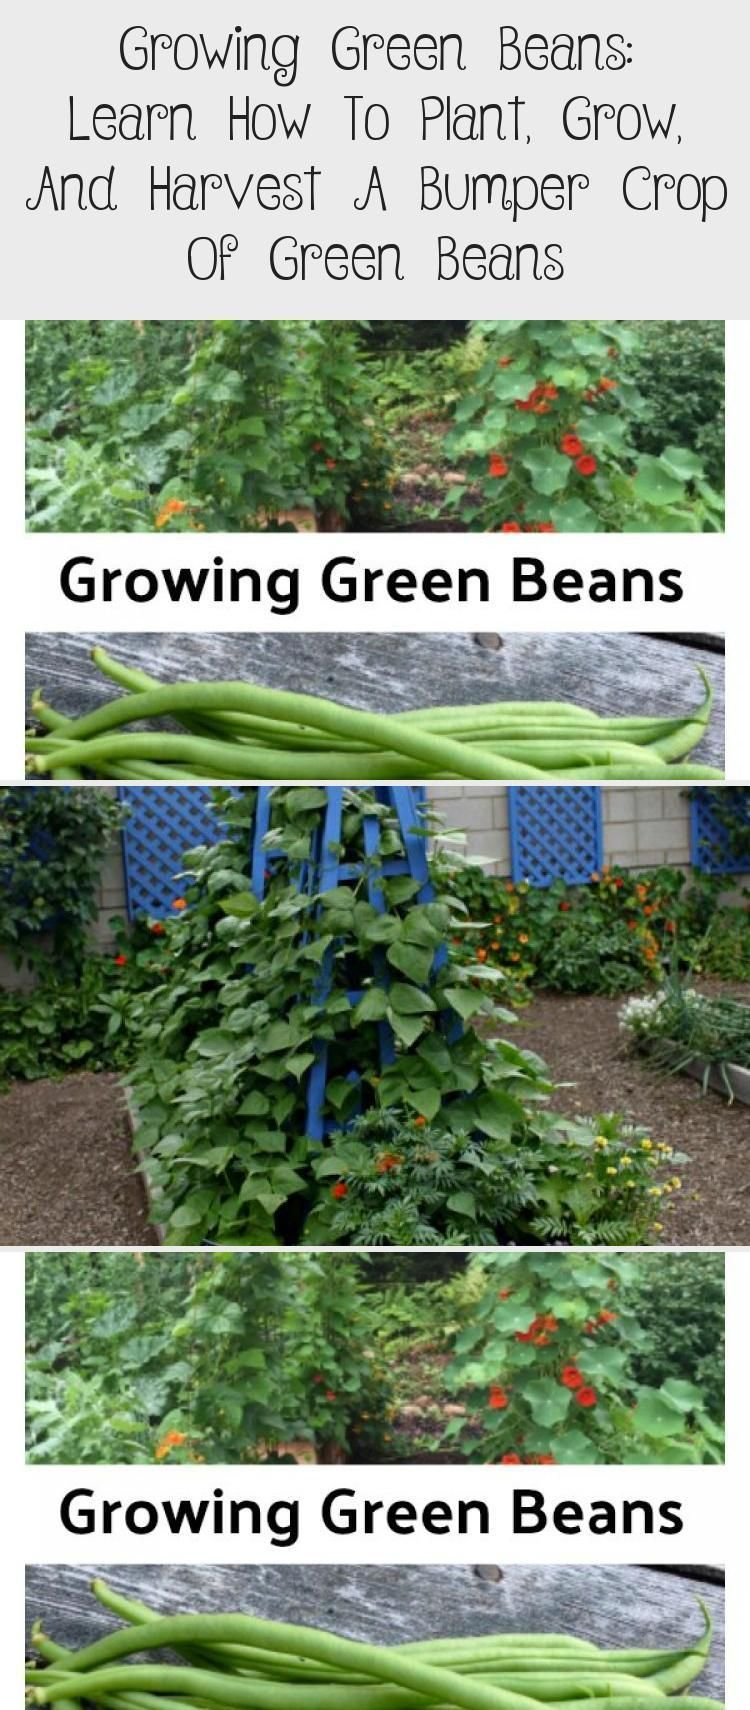 Tips For Growing Green Beans In Garden Beds And Containers Grow Pole Beans Up A Beans Beds Containe Growing Green Beans Green Beans Garden Growing Greens